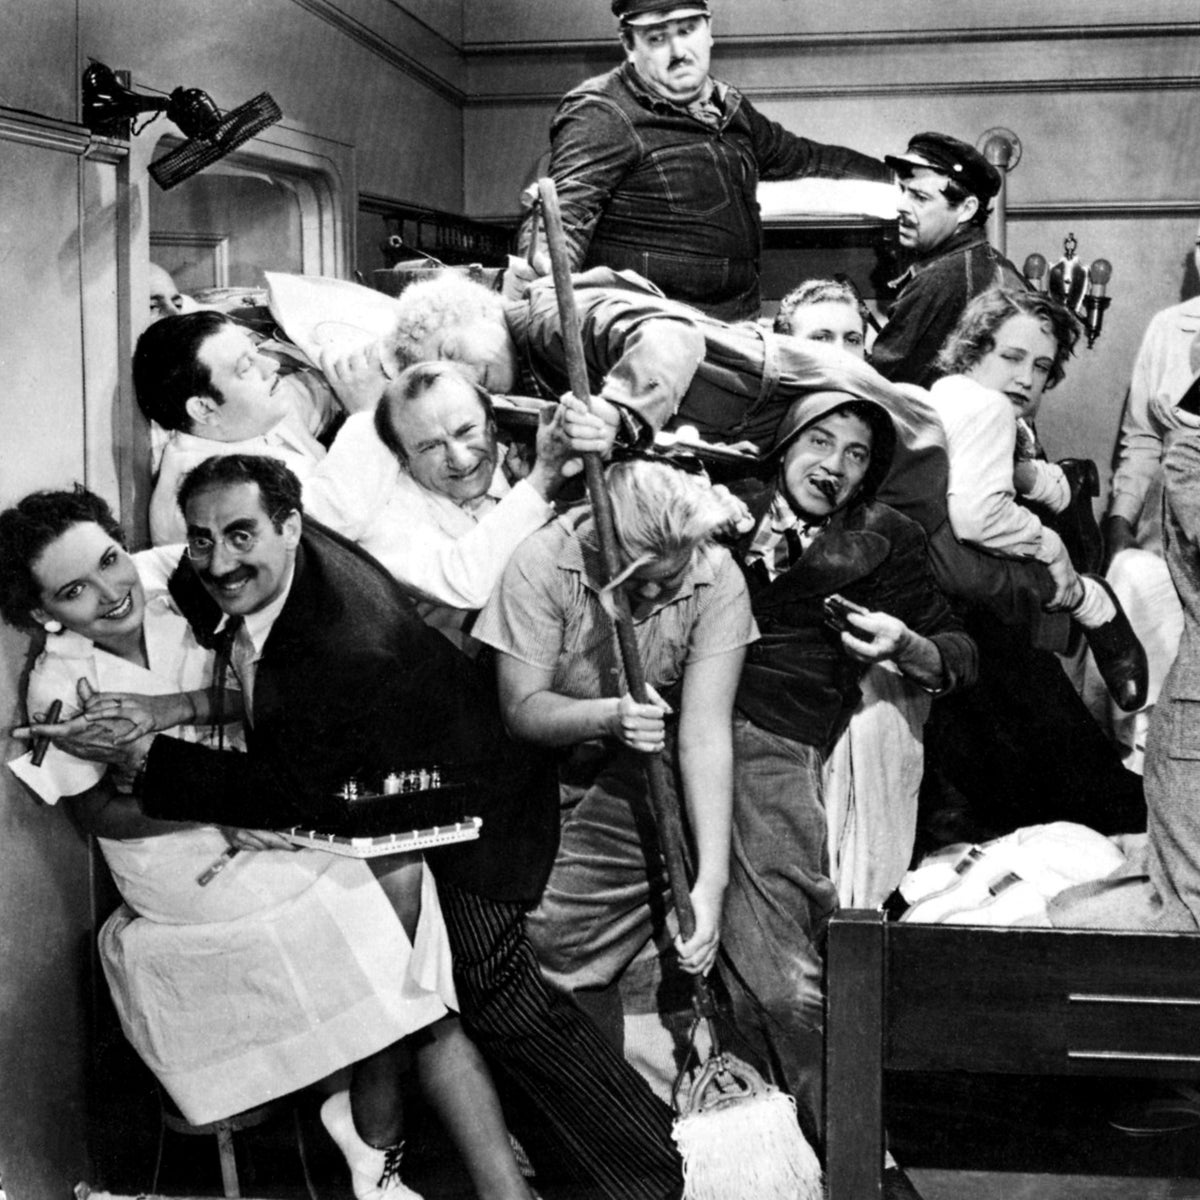 A scene from 'A Night at the Opera,' starring the Marx brothers.